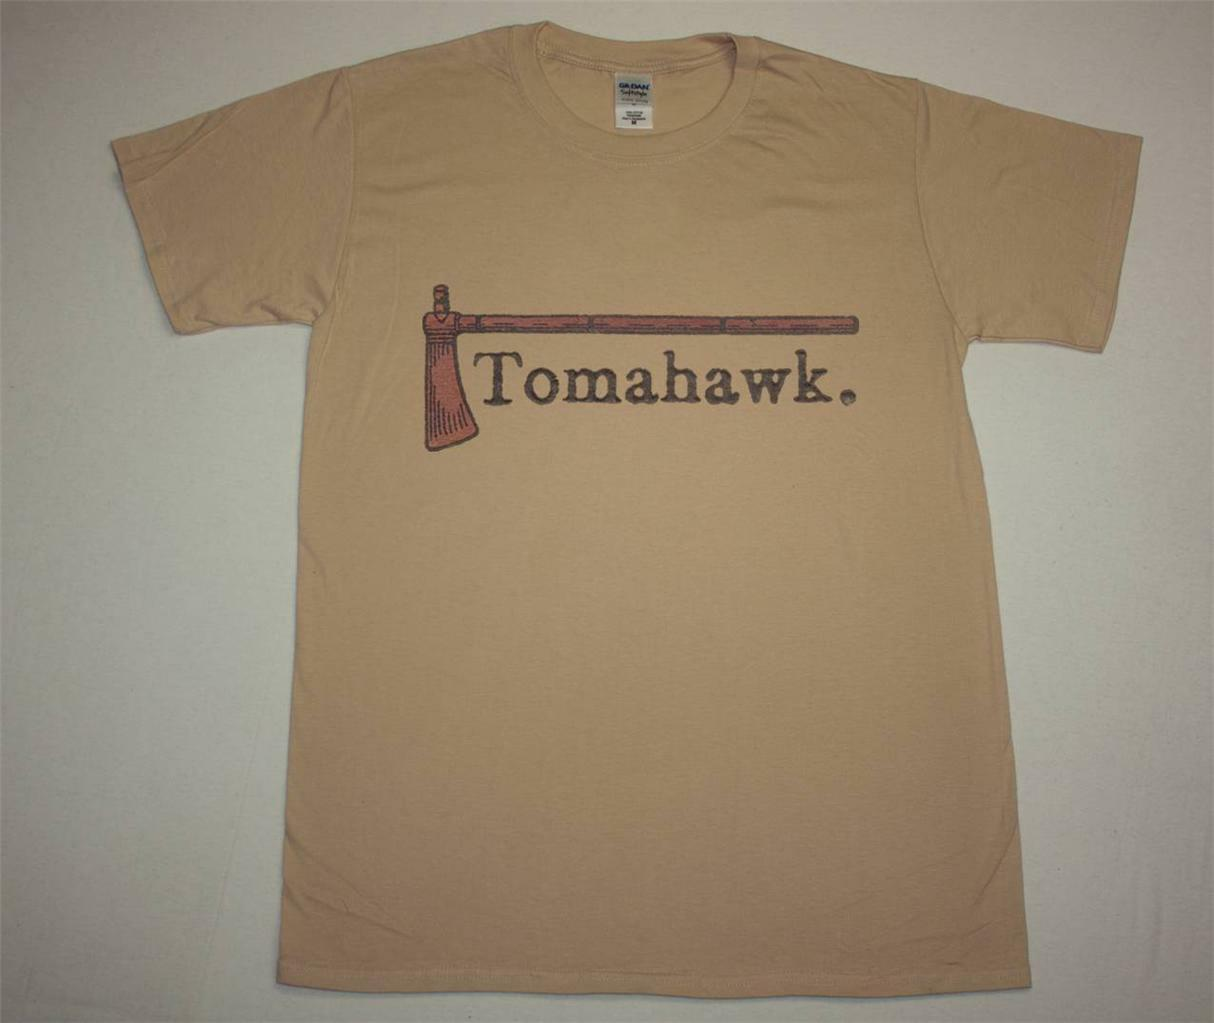 Tomahawk 2001 Mr Bungle Fantomas Mike Patton Melvins New Old Gold Color T Shirt